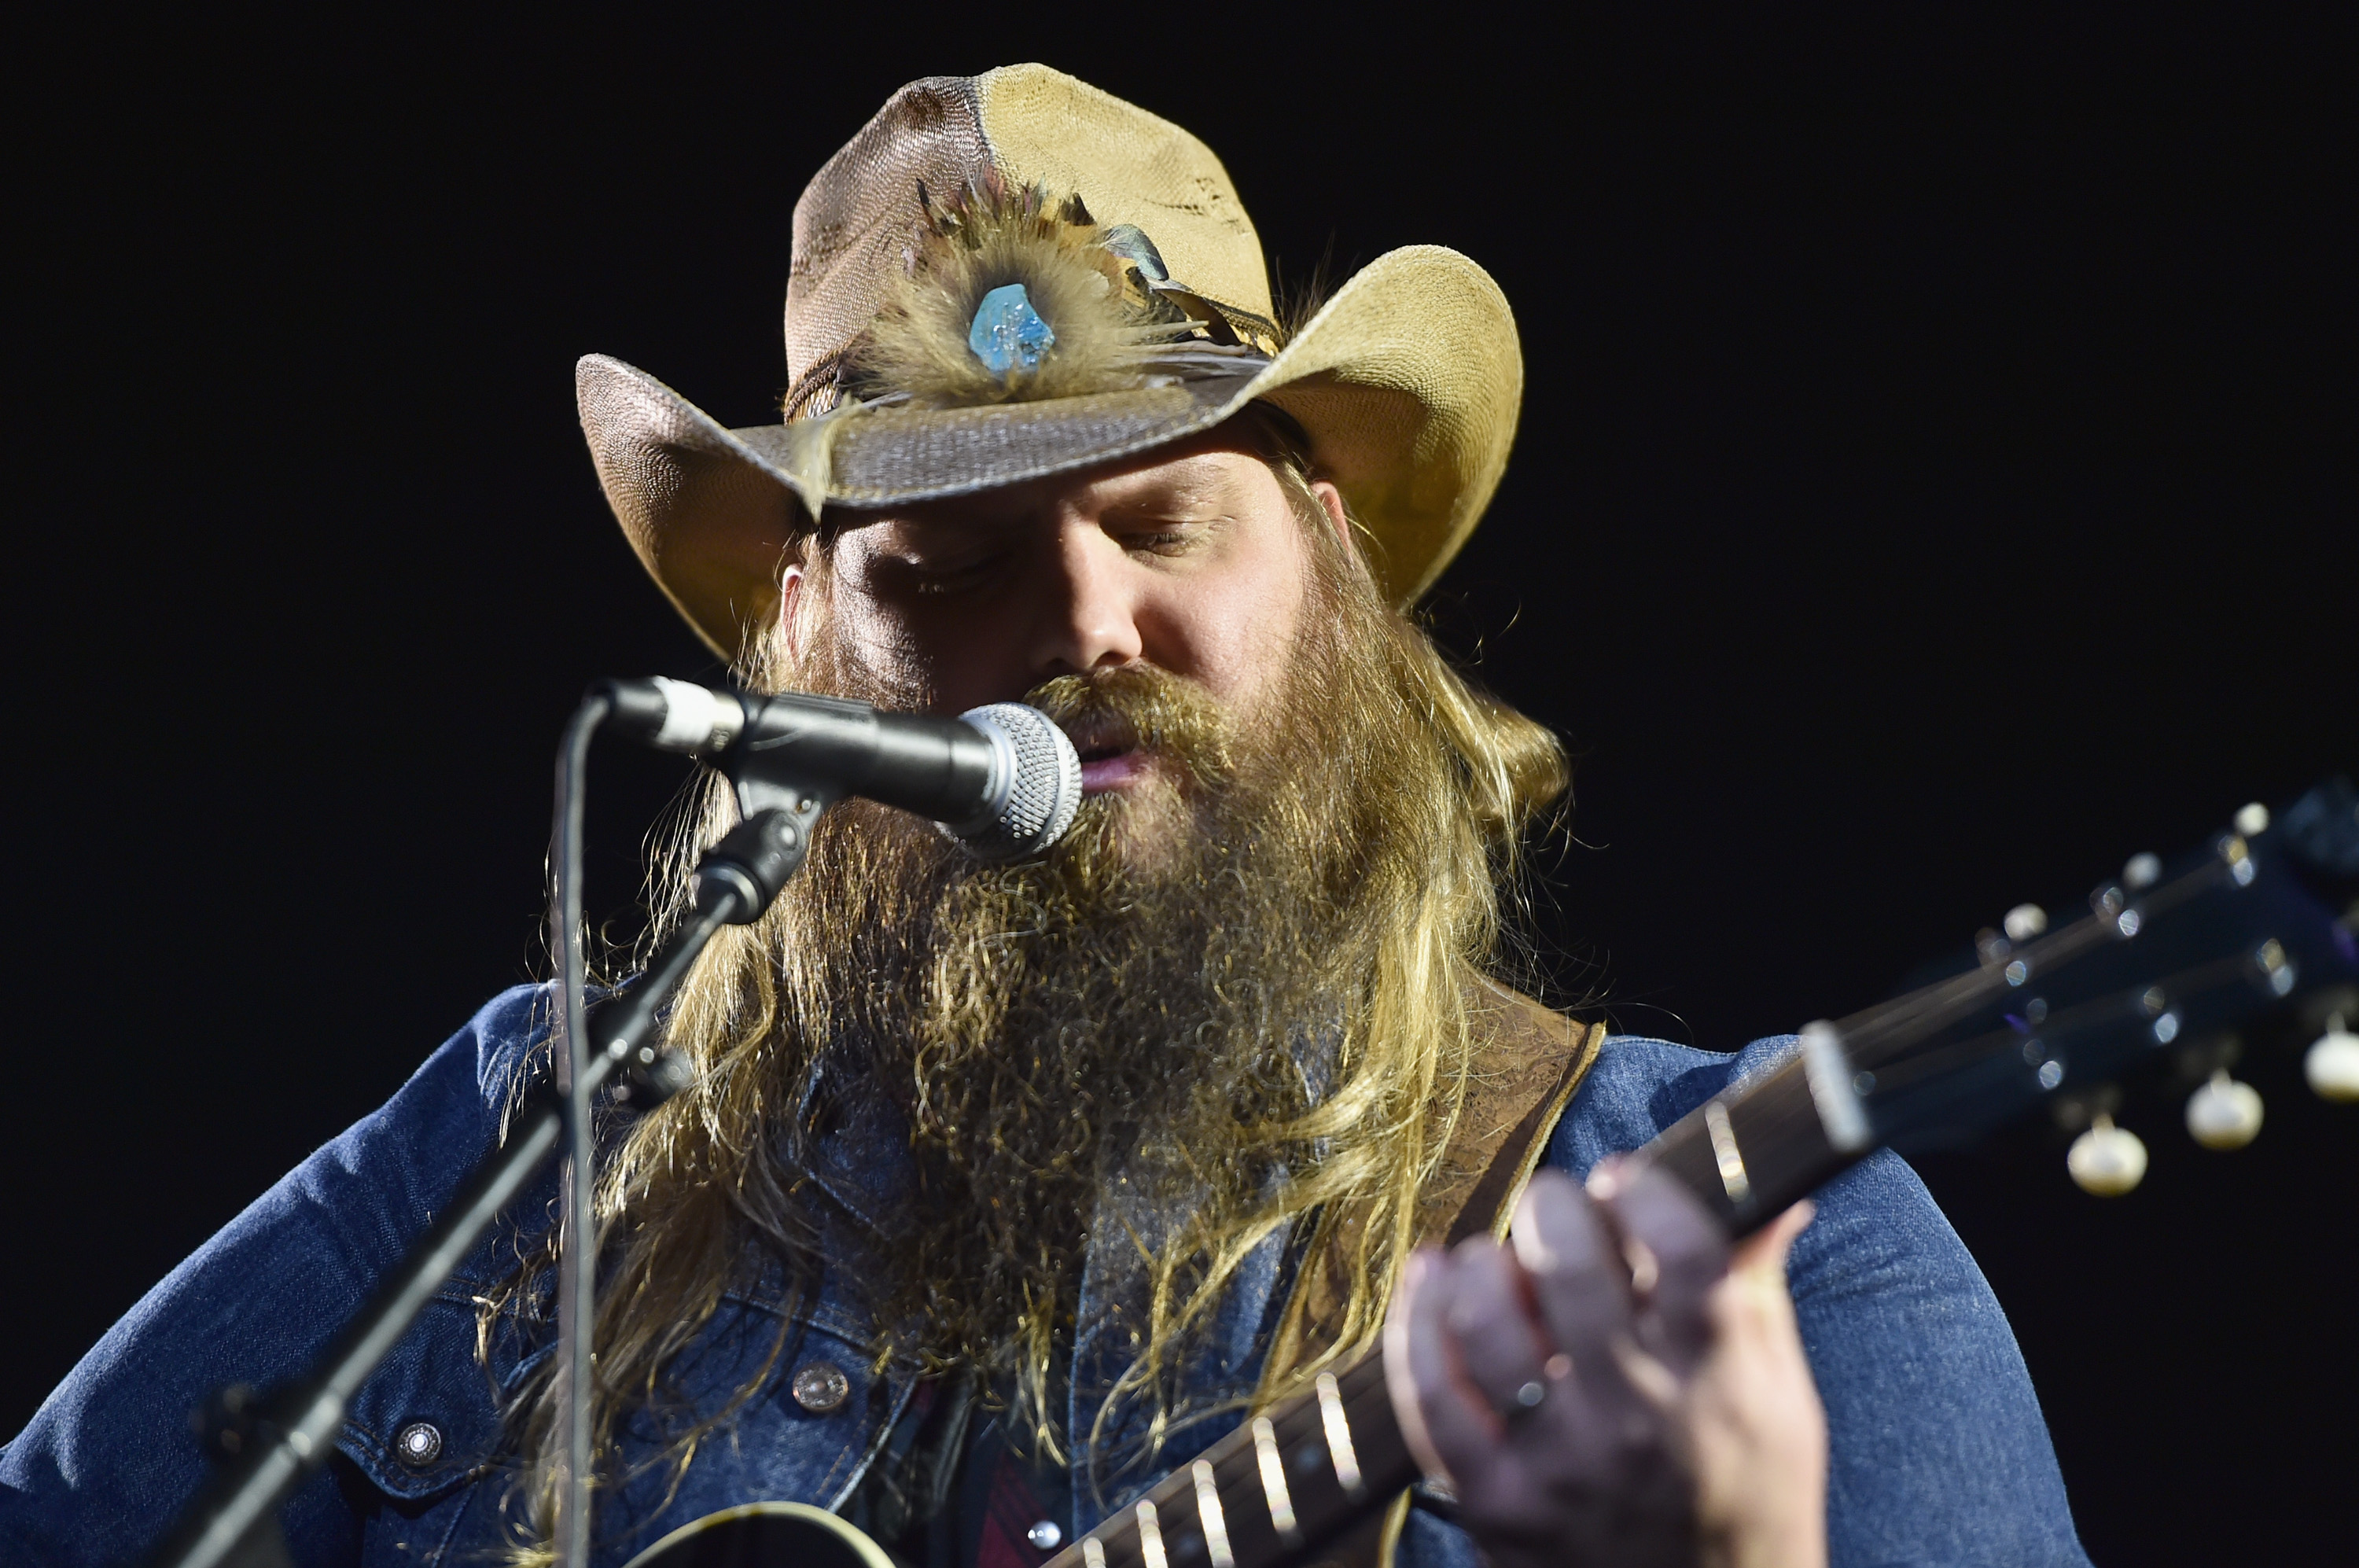 If You Had Tickets To A Postponed Chris Stapleton Concert Here In California You Can Get Into Our Listener Appreciation Concert (LAC) Free!